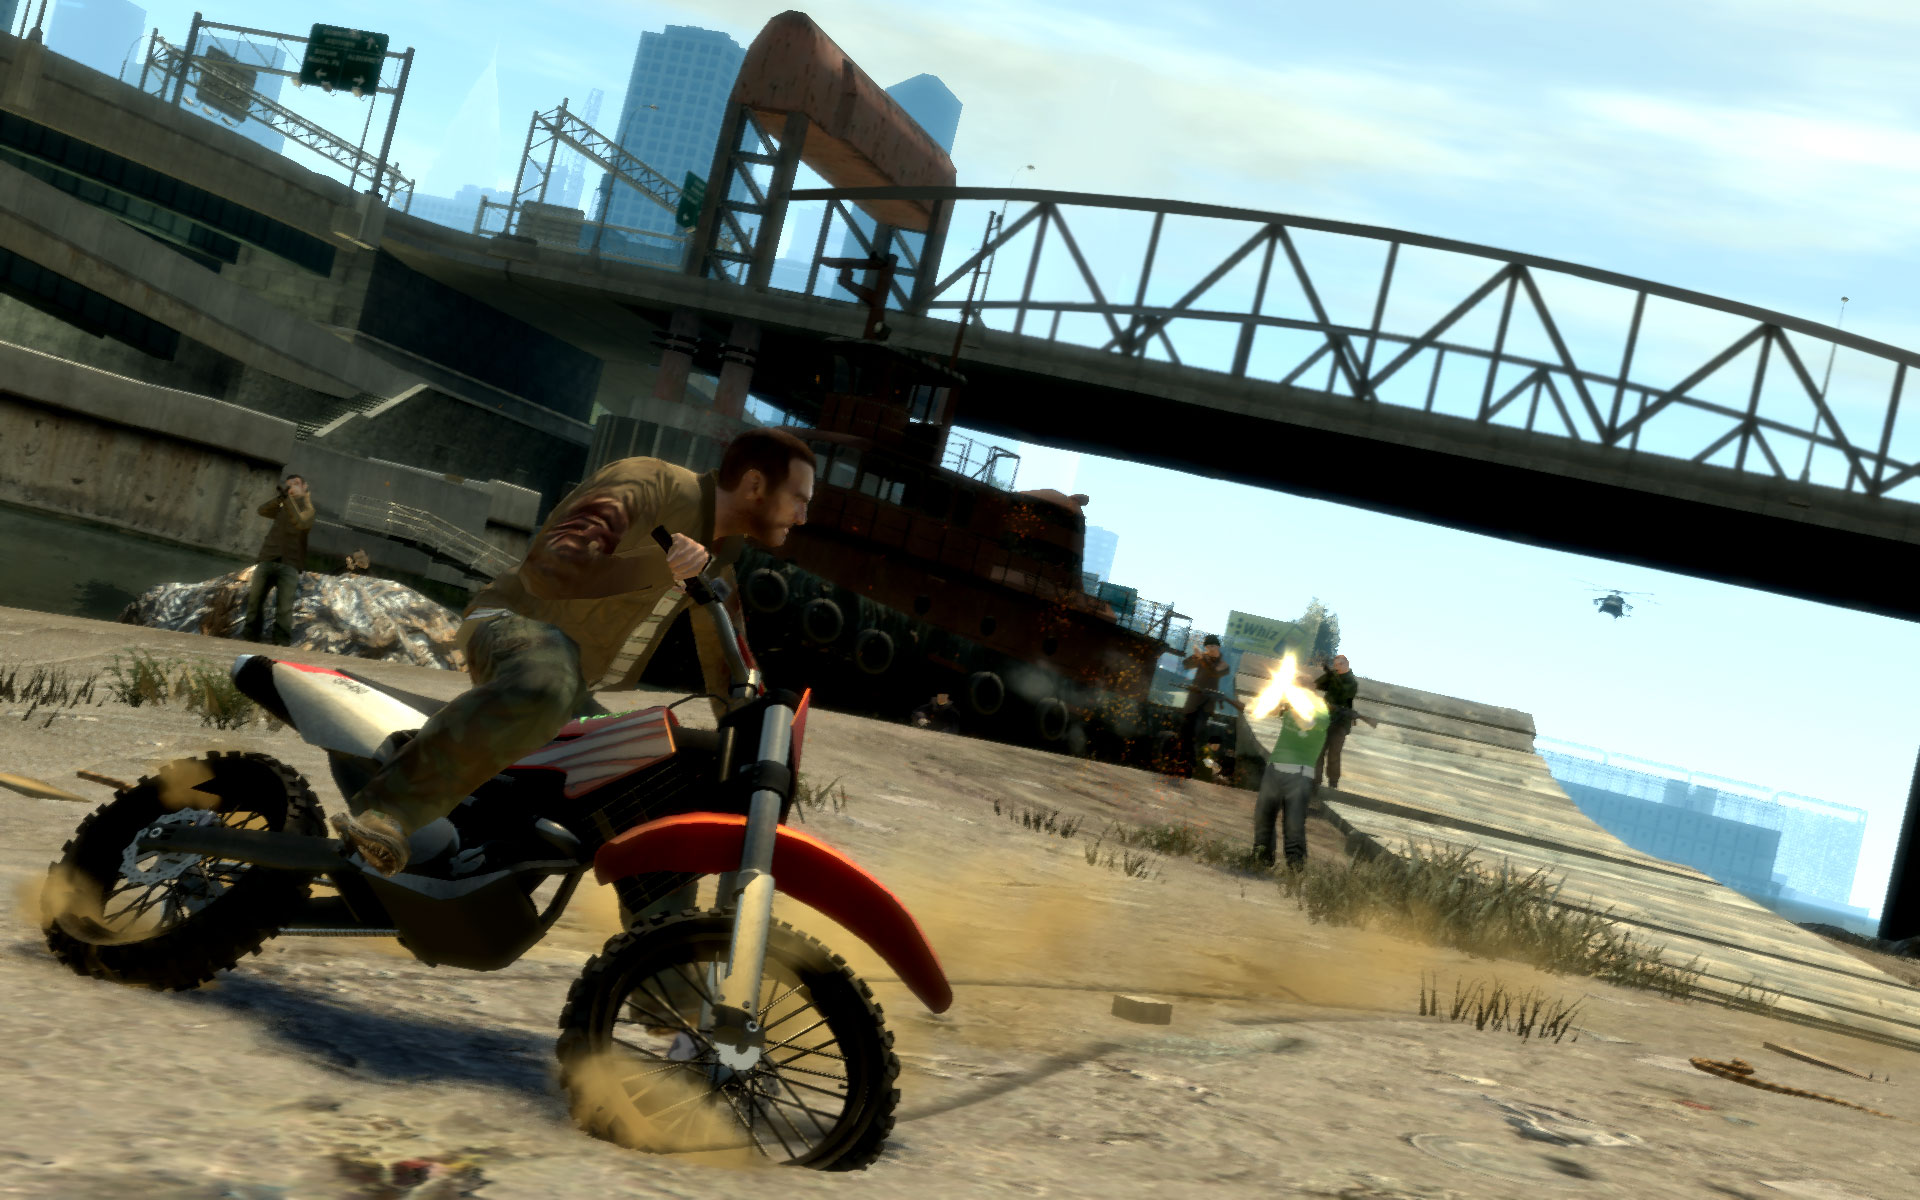 Grand theft auto (gta 4) 4 compressed | compressed games.